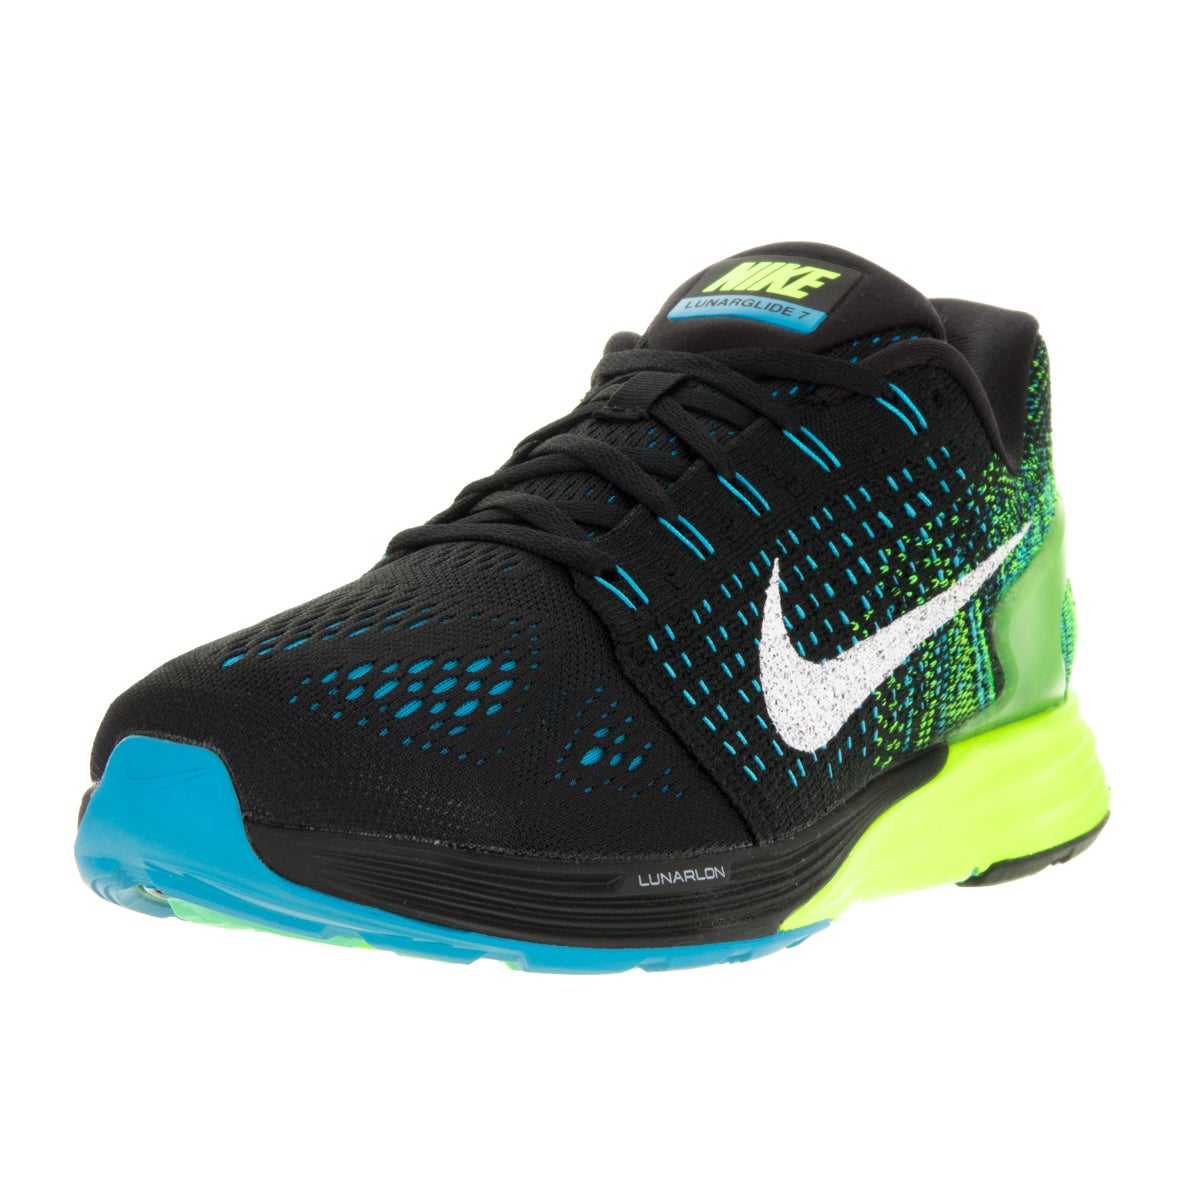 eb63f441524a Shop Nike Men s Lunarglide 7 Black White Blue Lagoon Volt Running Shoe -  Free Shipping Today - Overstock - 13394957